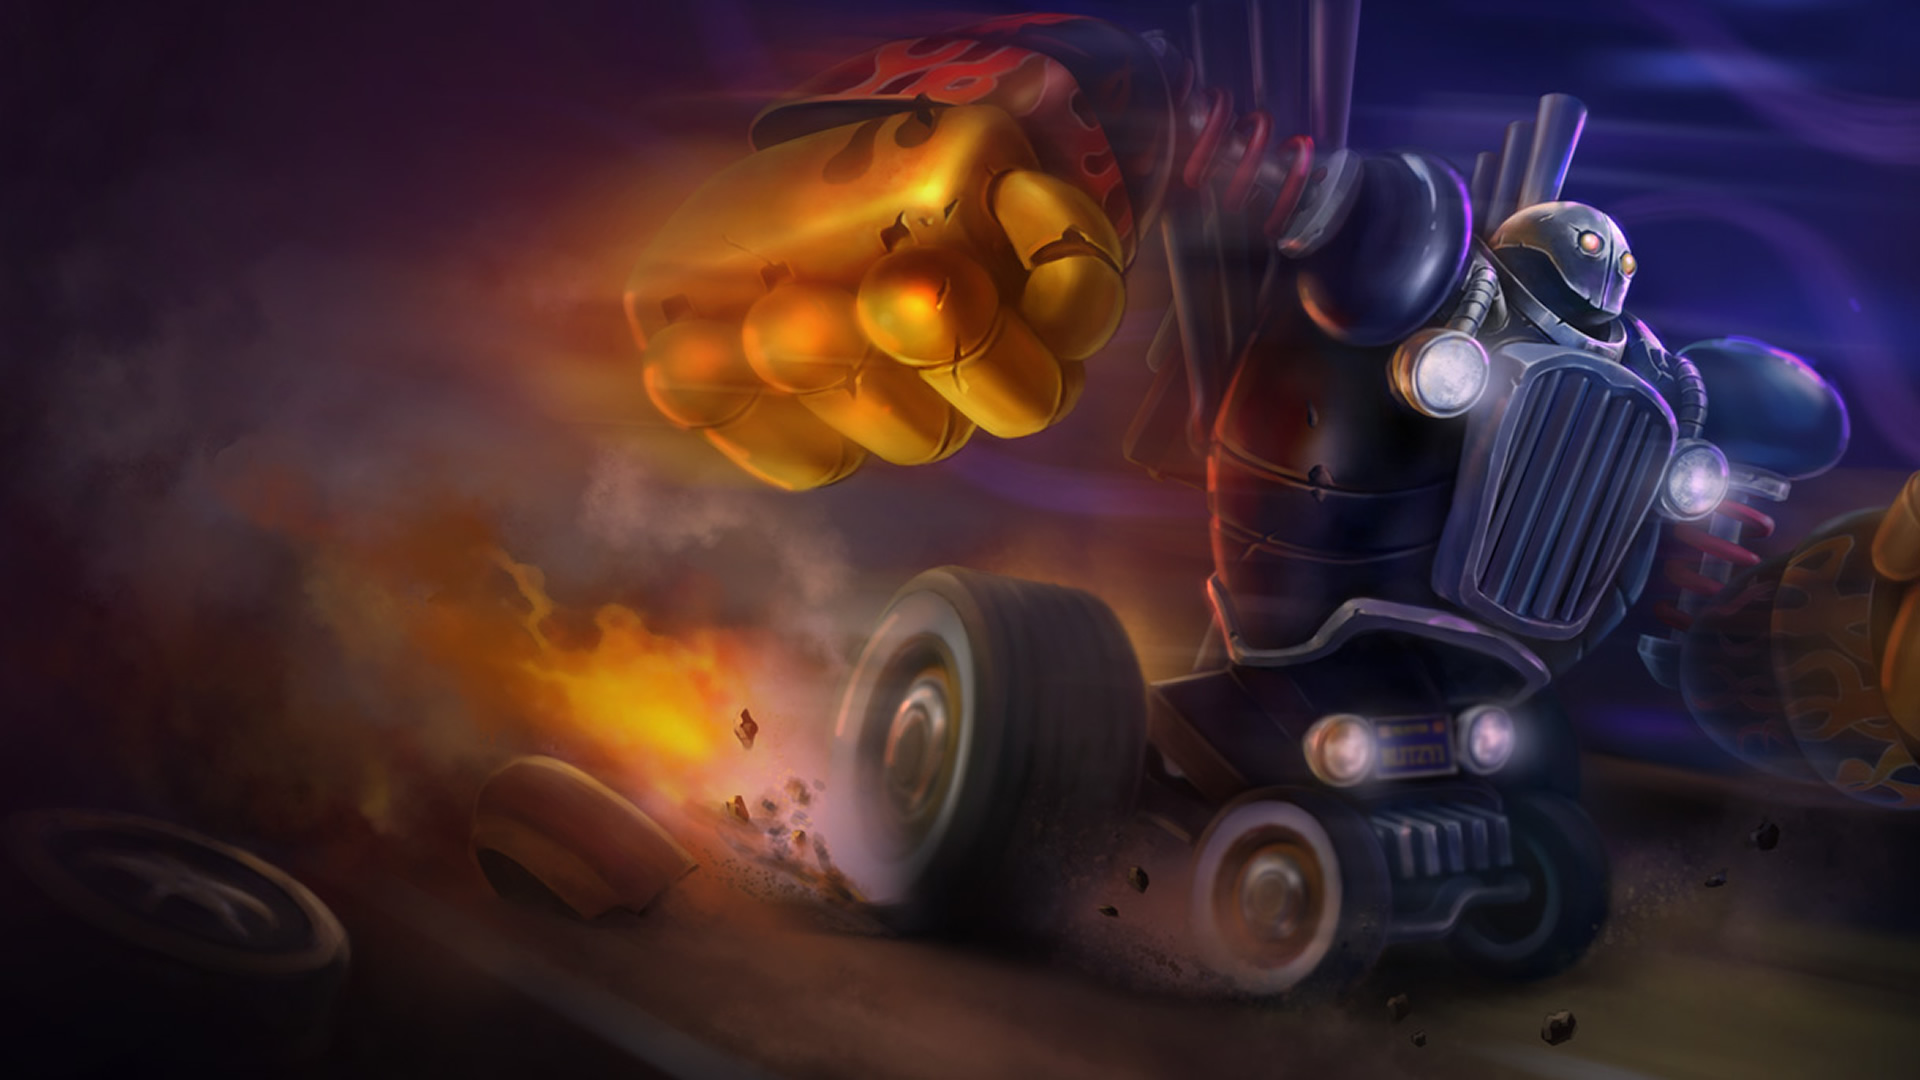 Piltover Customs Blitzcrank wallpaper